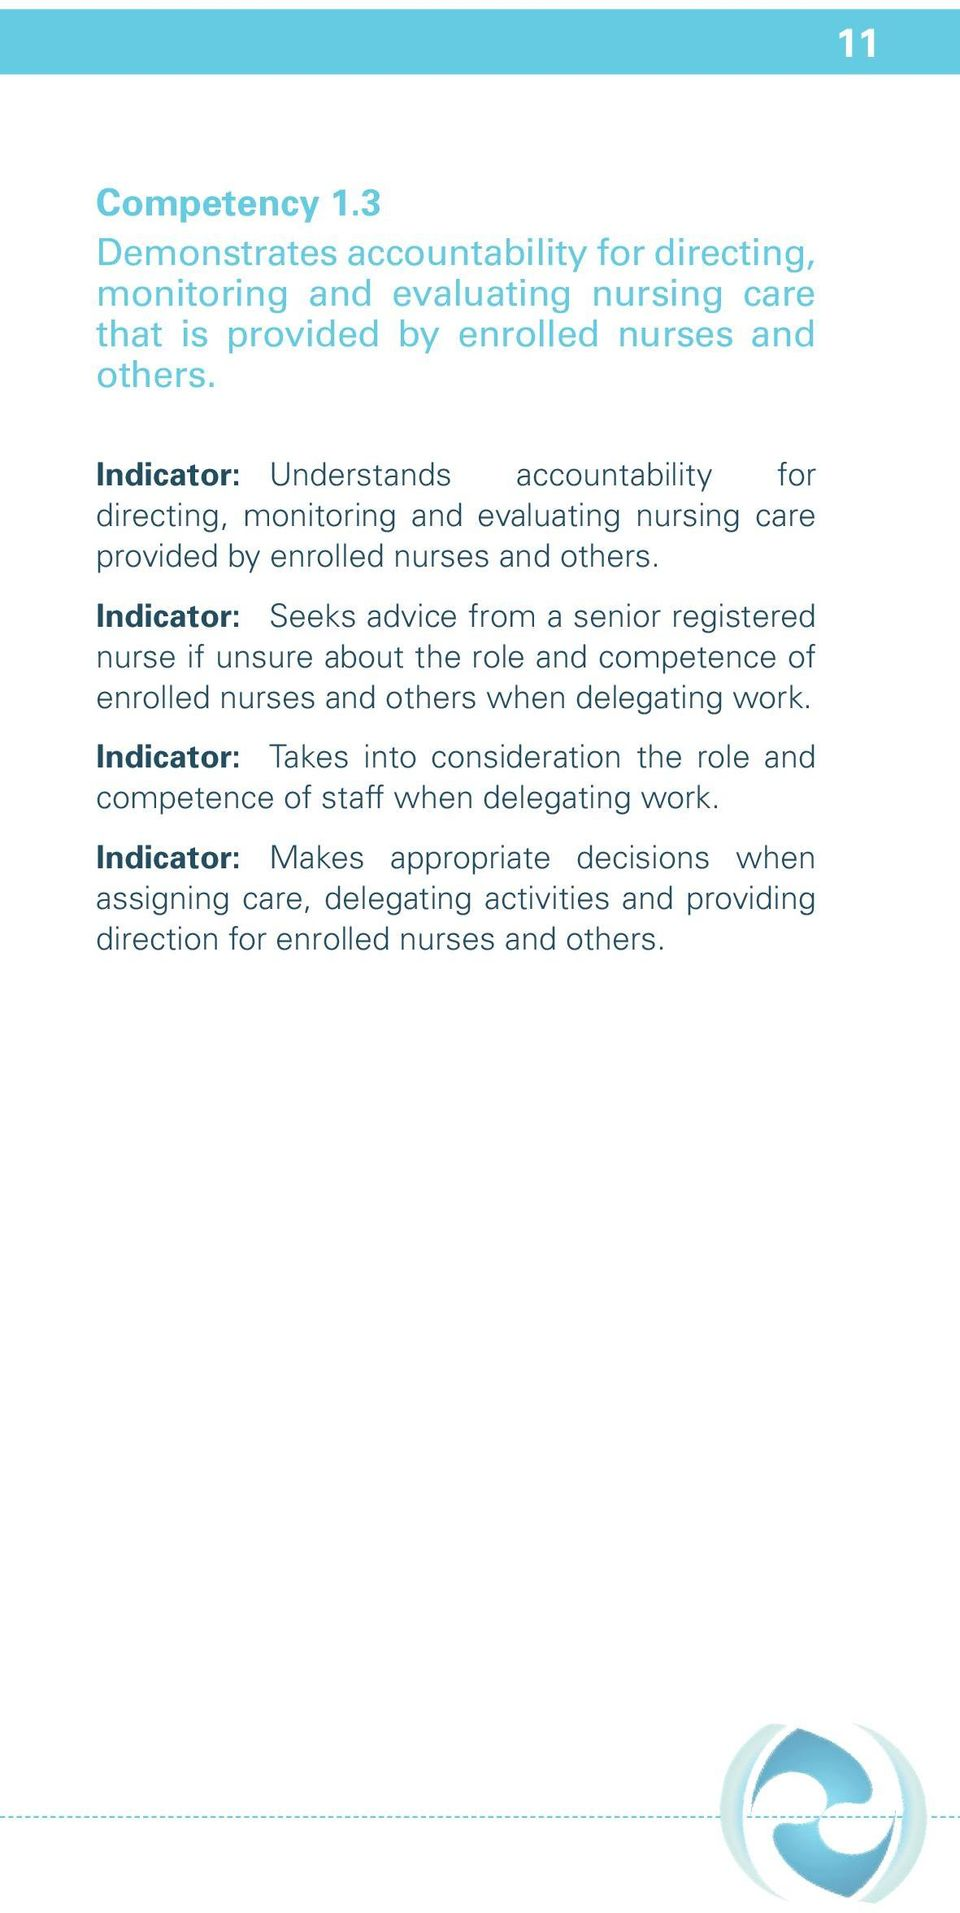 Indicator: Seeks advice from a senior registered nurse if unsure about the role and competence of enrolled nurses and others when delegating work.